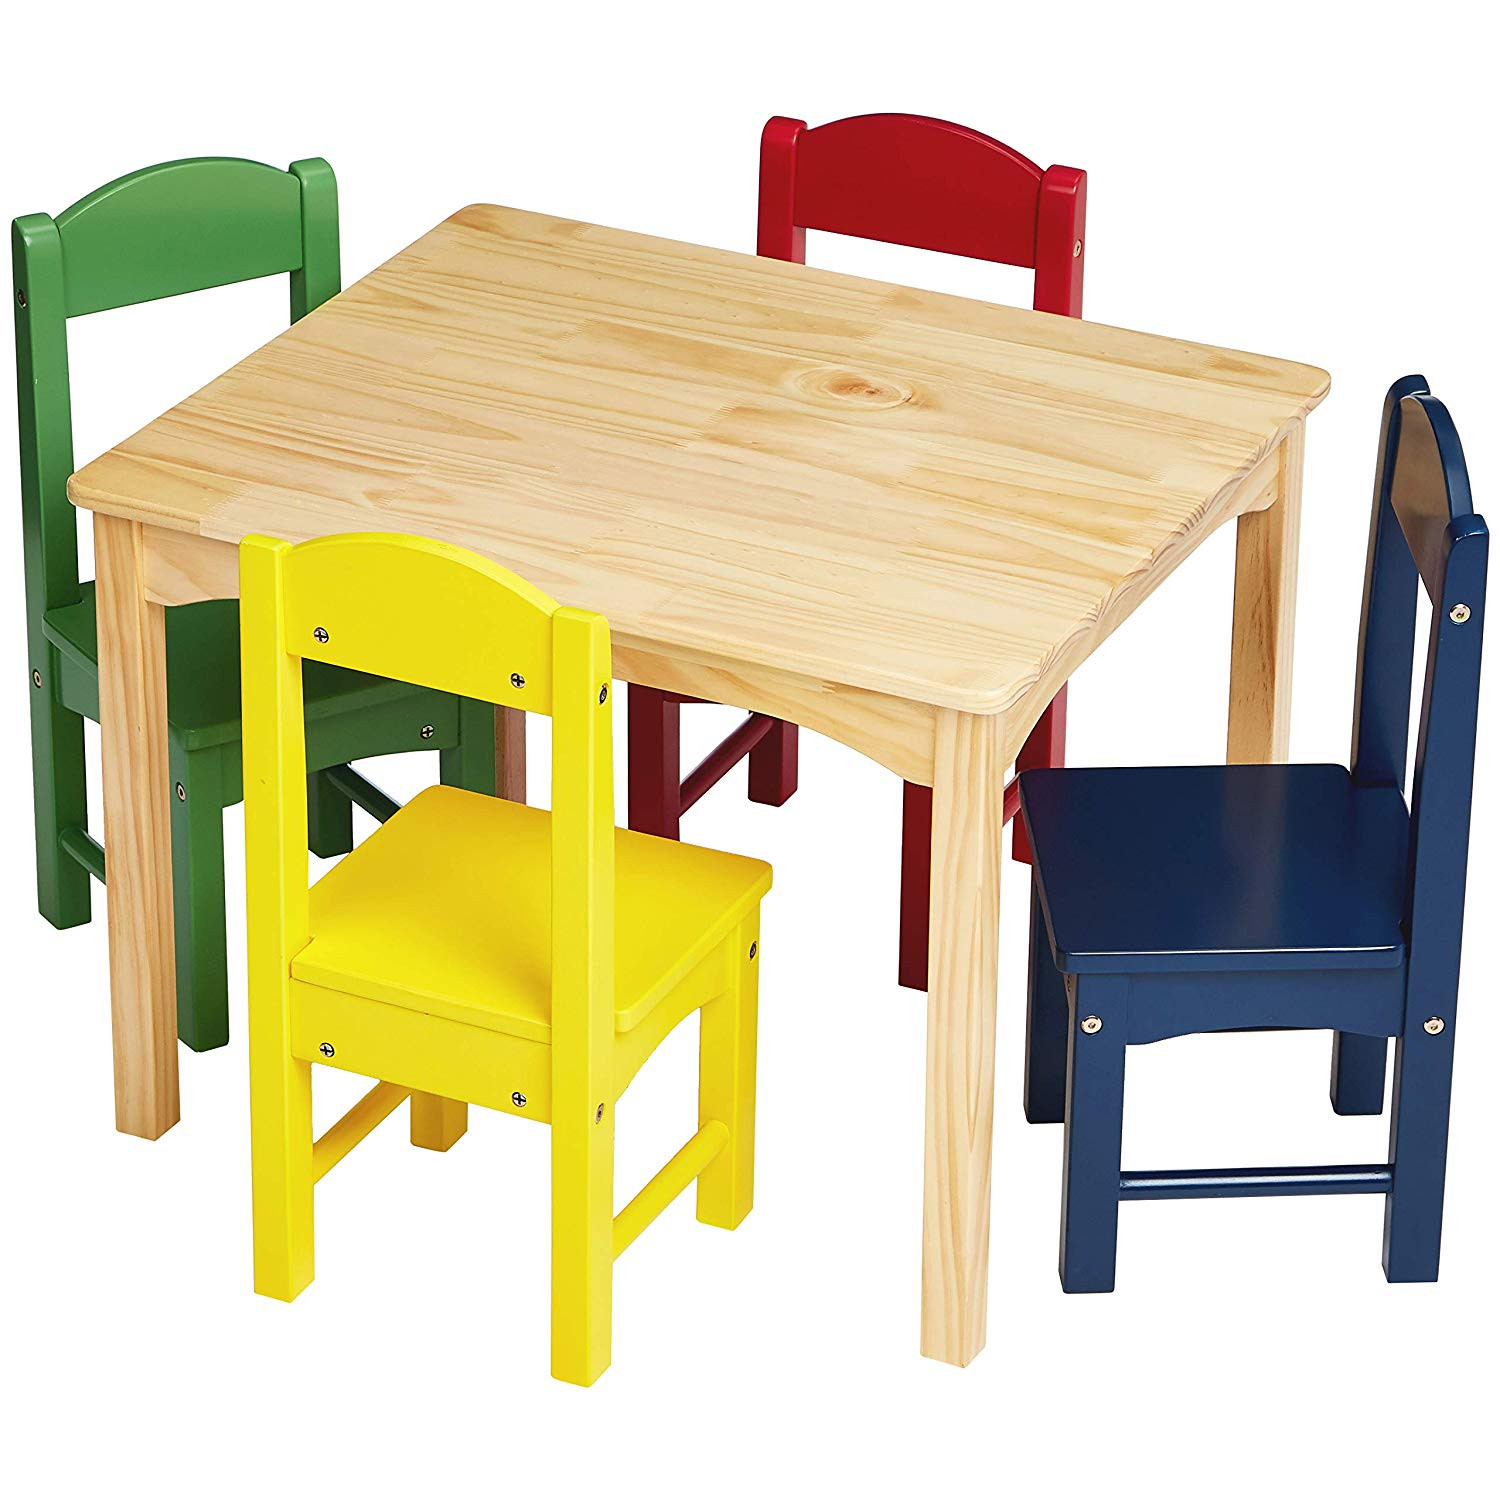 Best Kids Table  The Best Kids Tables & Chairs You Can Buy on Amazon – SheKnows